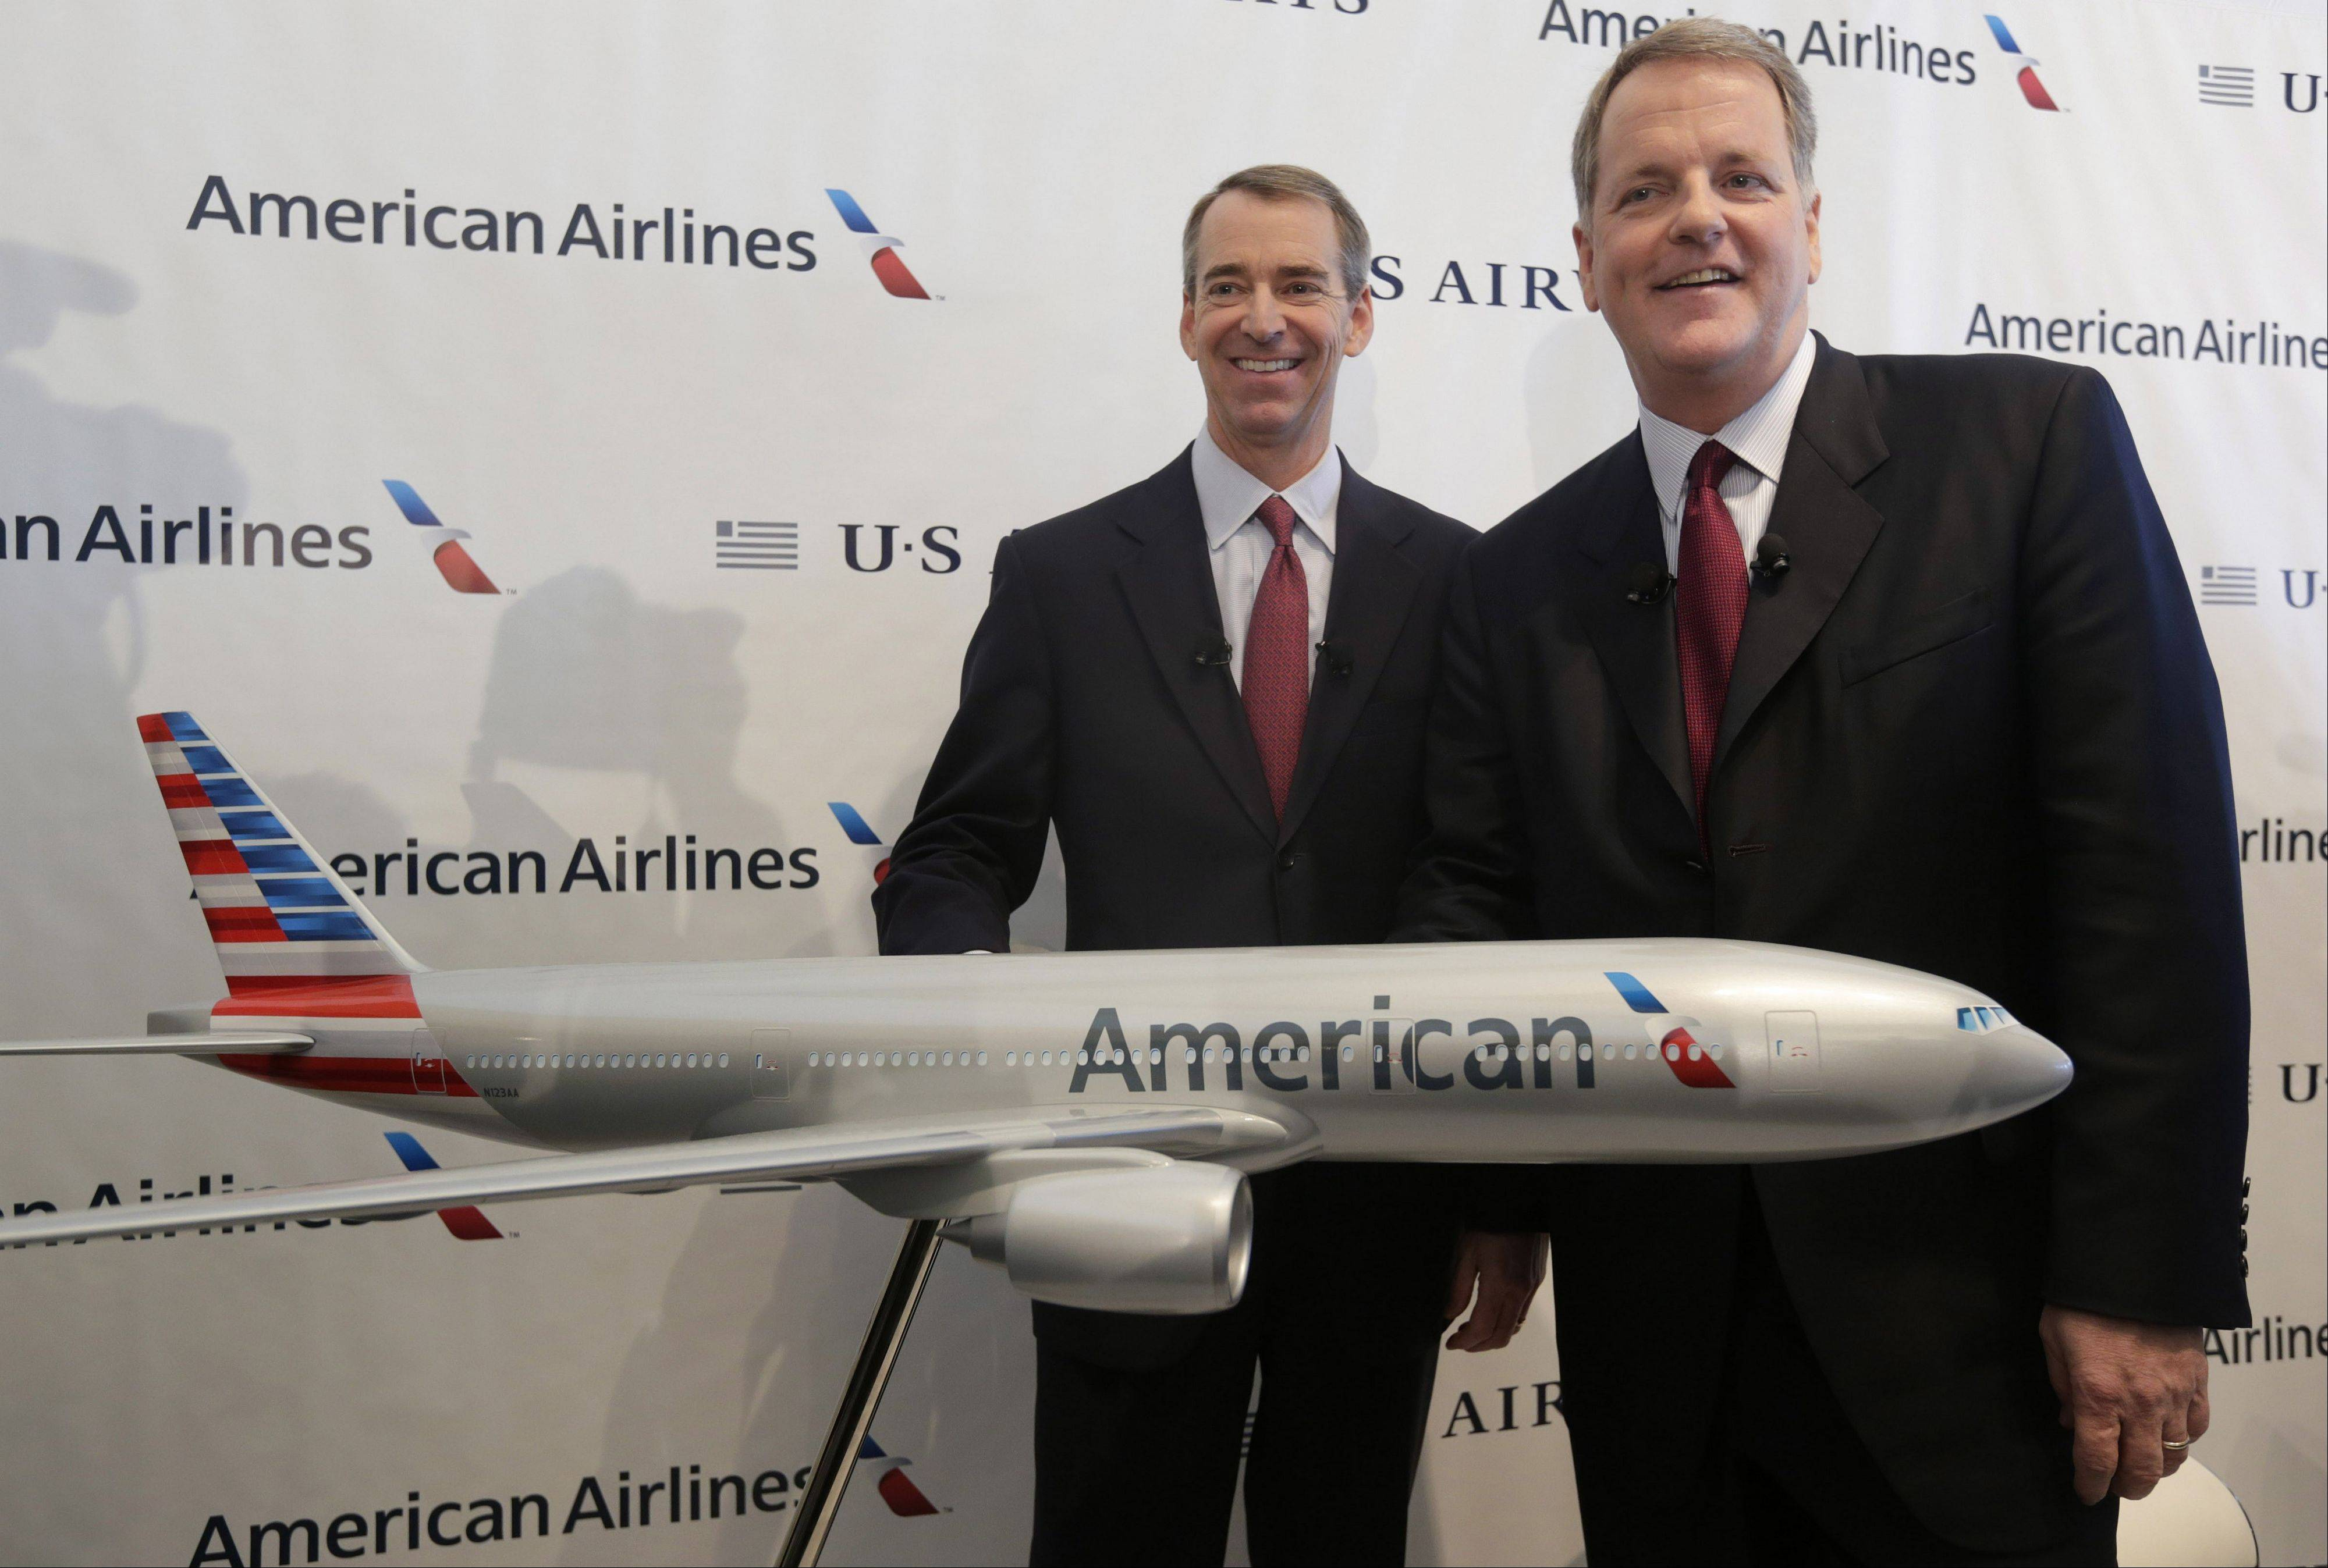 U.S. Airways CEO Doug Parker, right, and American Airlines CEO Tom Horton after a news conference at DFW International Airport.